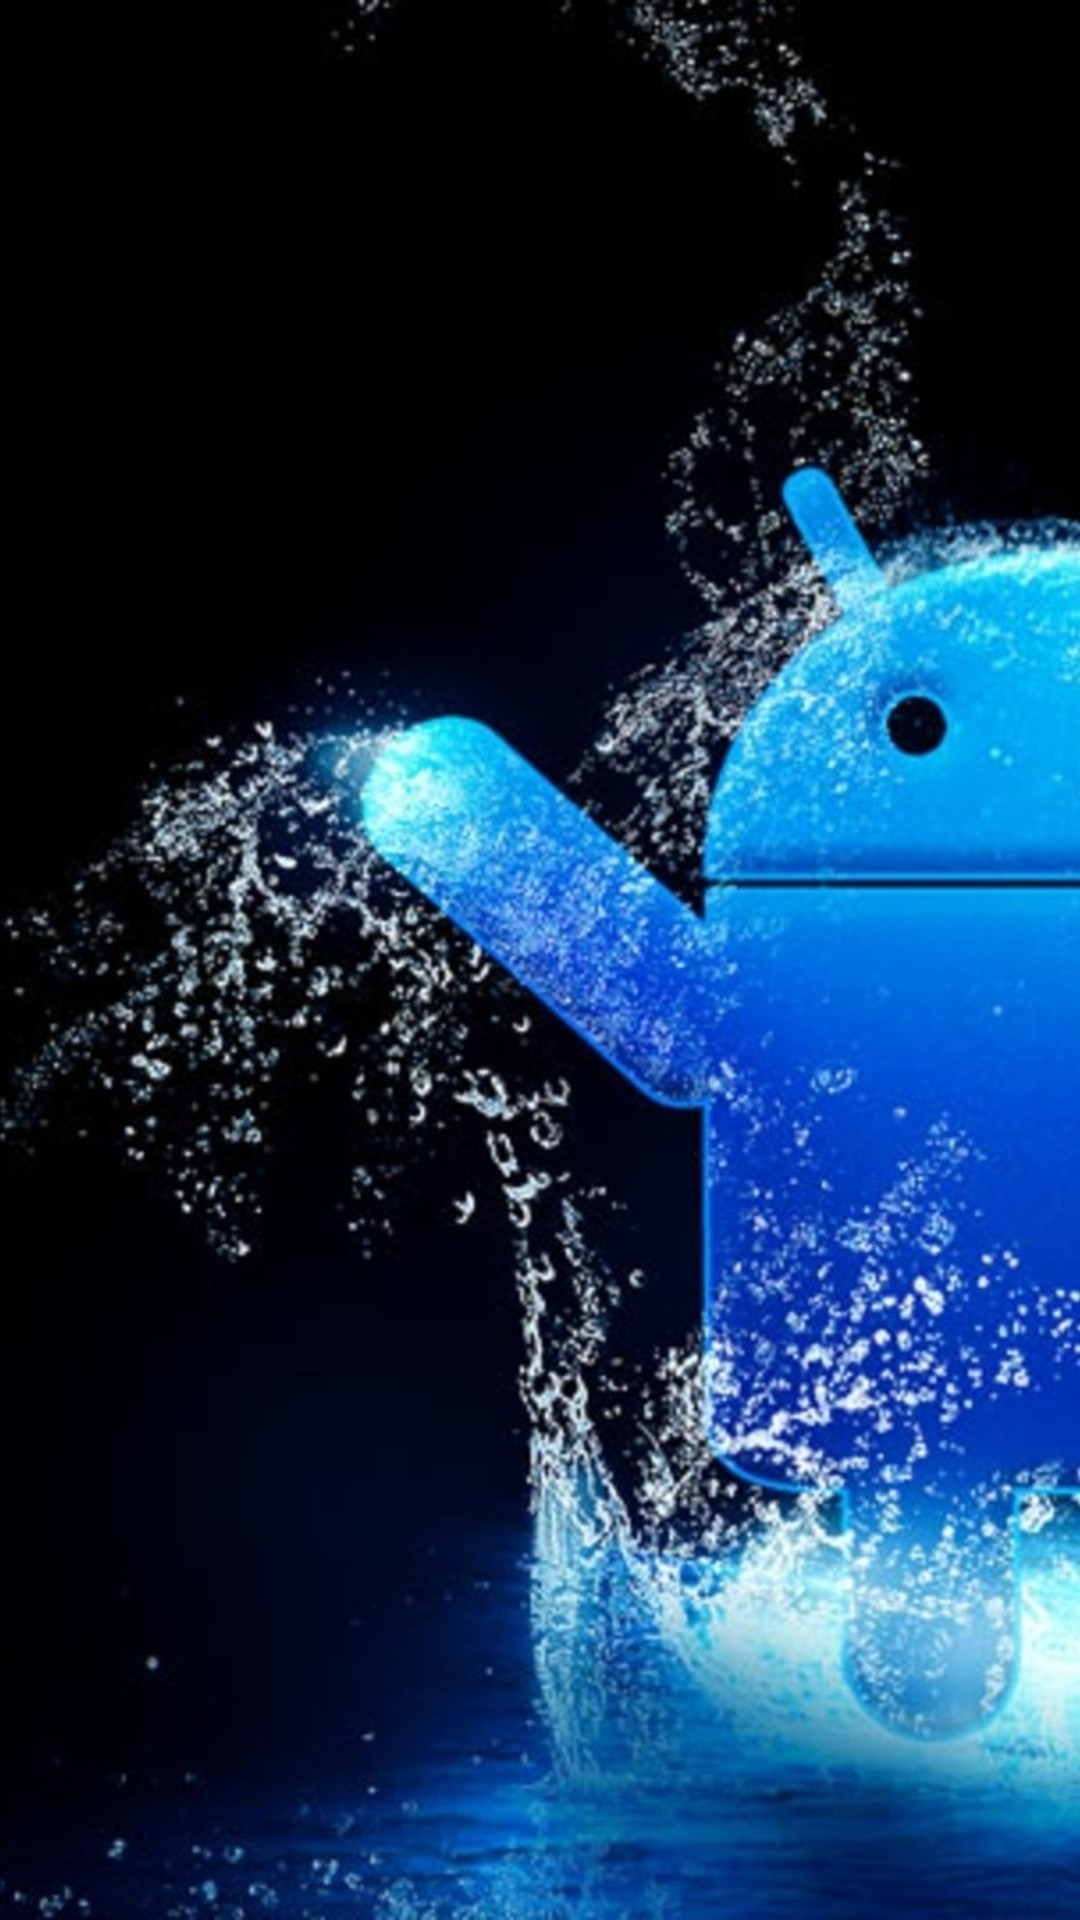 1080x1920 Blue Water Android Logo Android Wallpaper ...